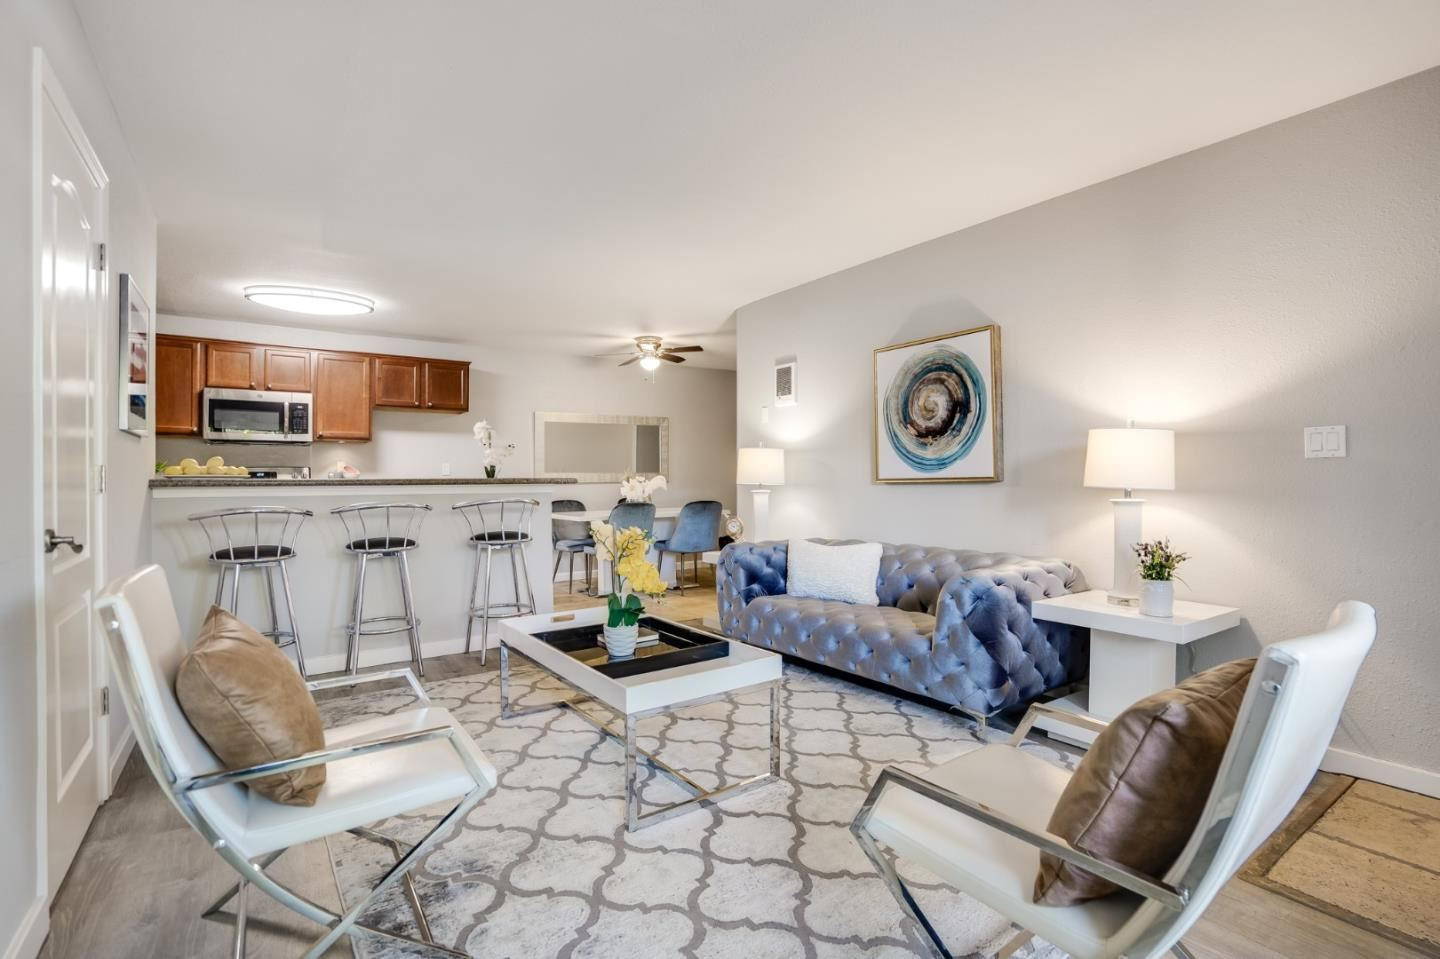 Photo for 400 Dempsey RD 100 #100, MILPITAS, CA 95035 (MLS # ML81835823)